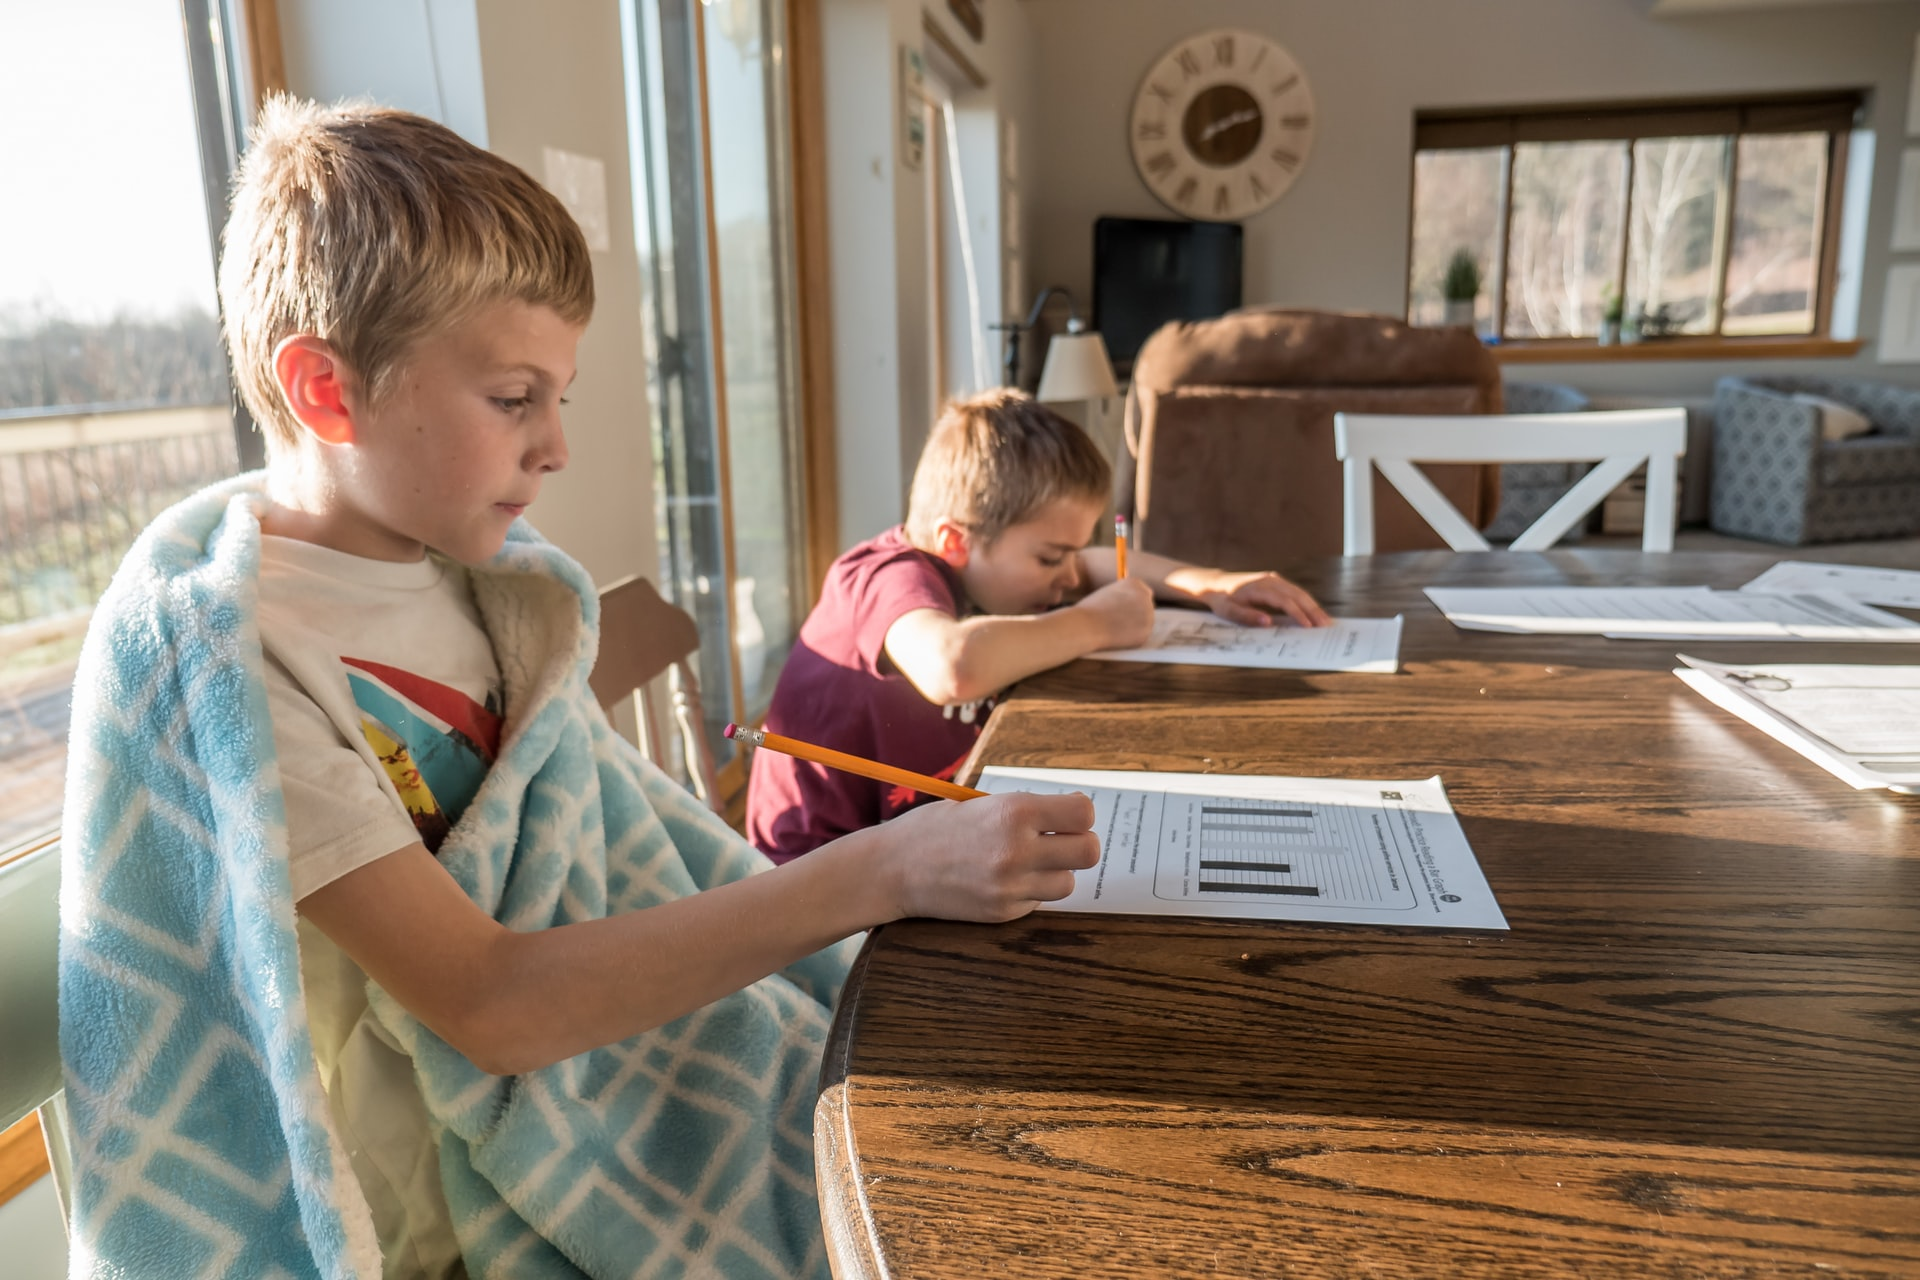 Are You Homeschooling Because of the COVID-19 Pandemic?Here are 6 Encouraging Tips to Make Learning Fun